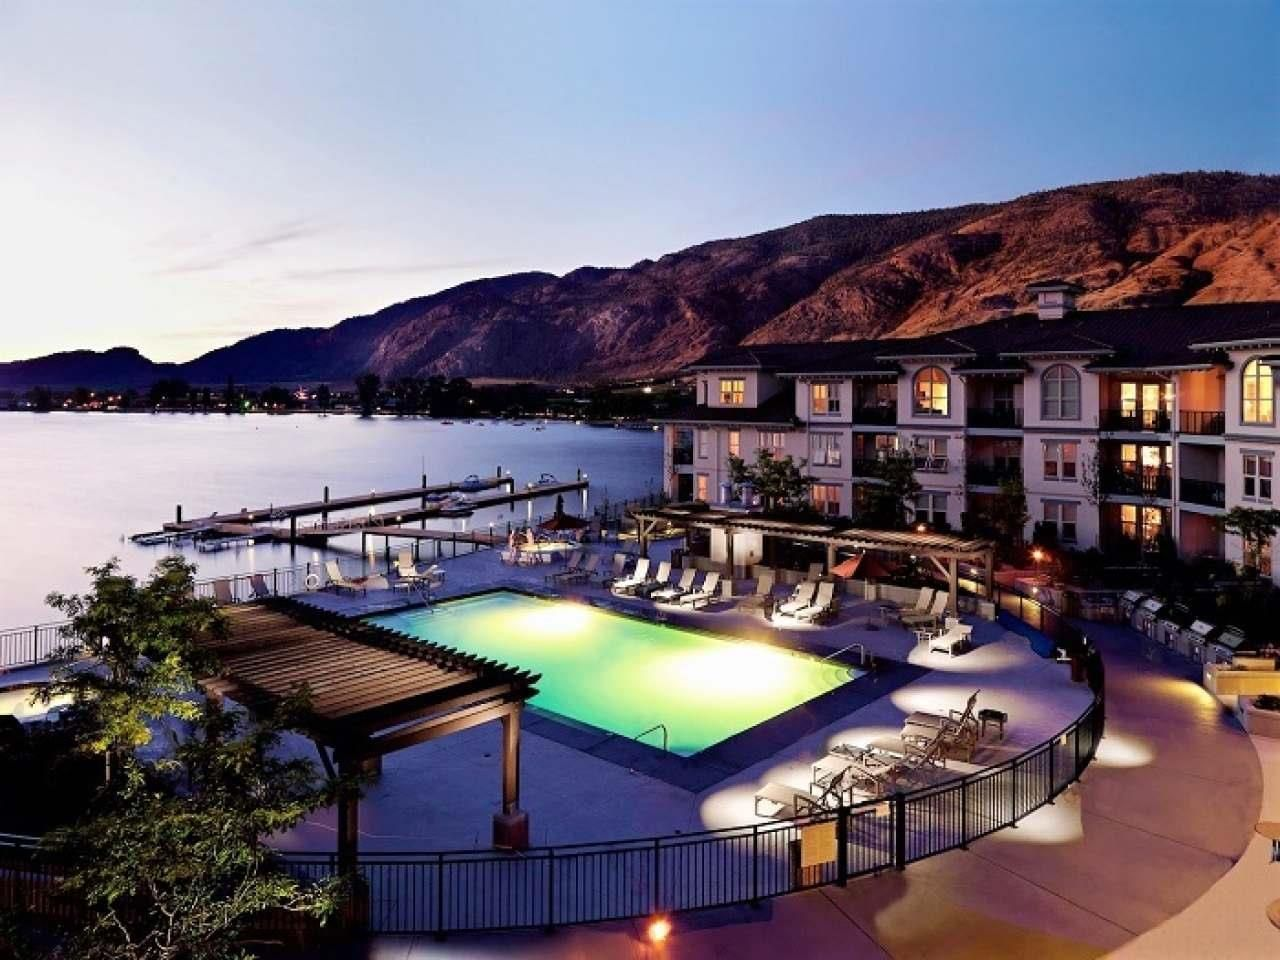 Main Photo: #107 4200 LAKESHORE Drive, in Osoyoos: House for sale : MLS®# 190346